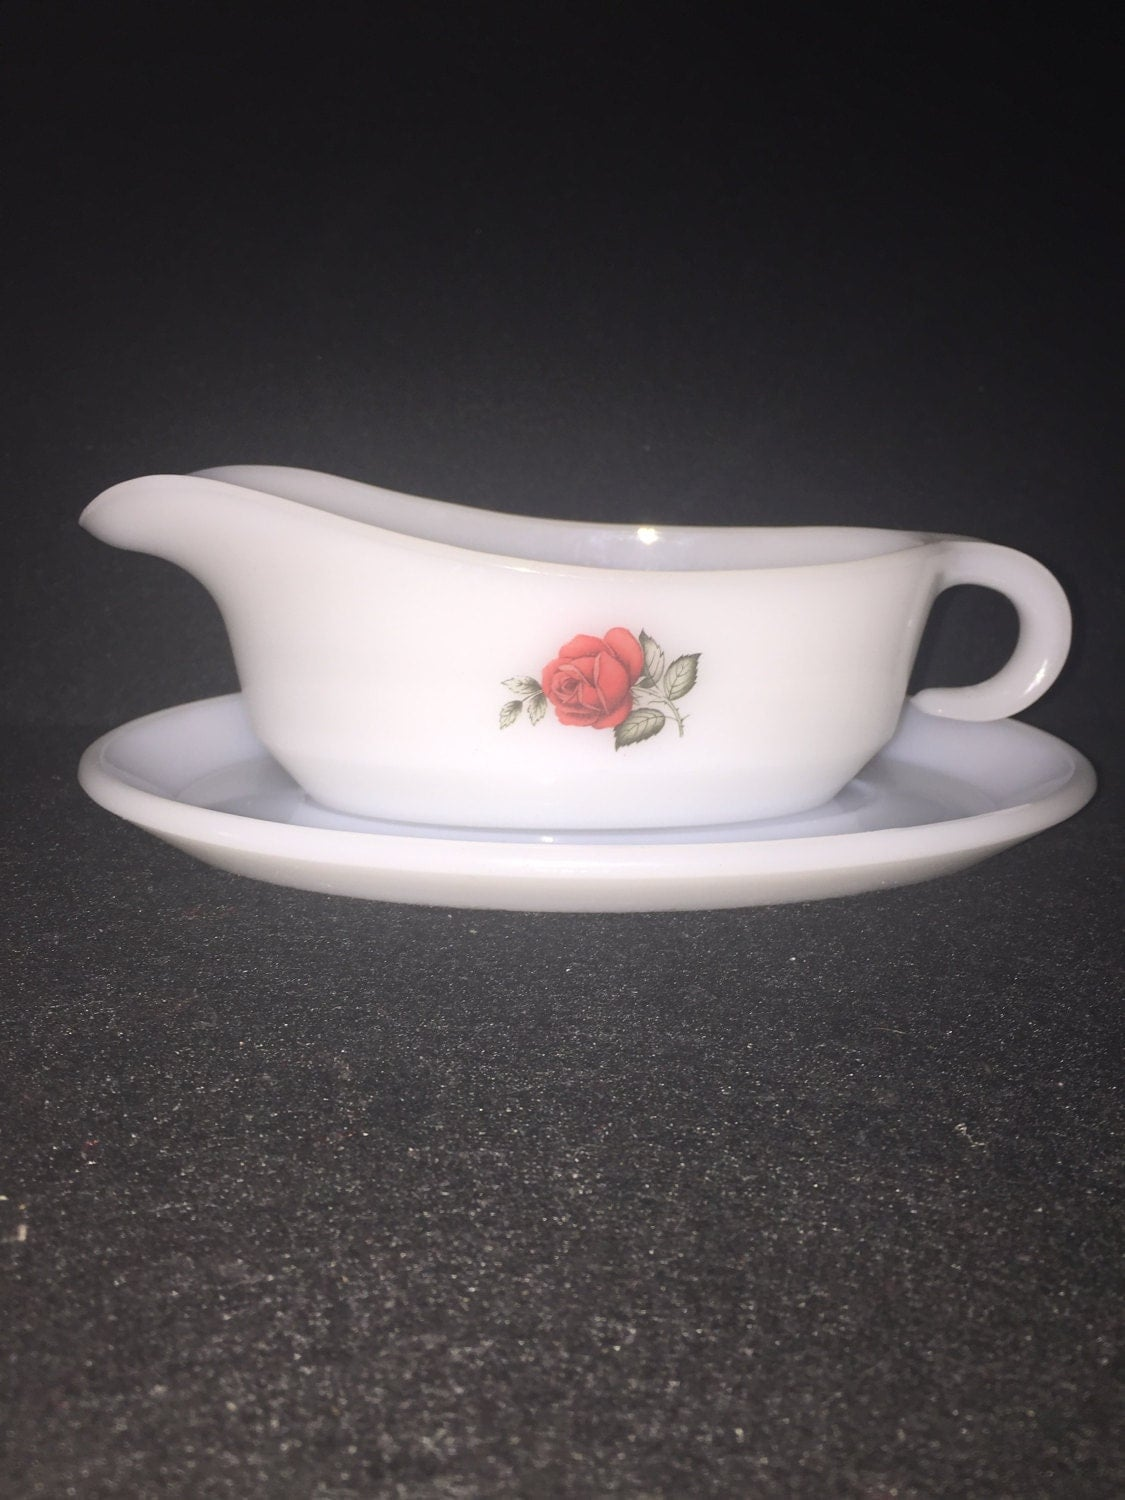 Vintage Red Rose Gravy boat  Gravy jug  retro Phoenix Opalware  Red Rose gravy boat jug circa 1960  retro kitchen  milk glass boat